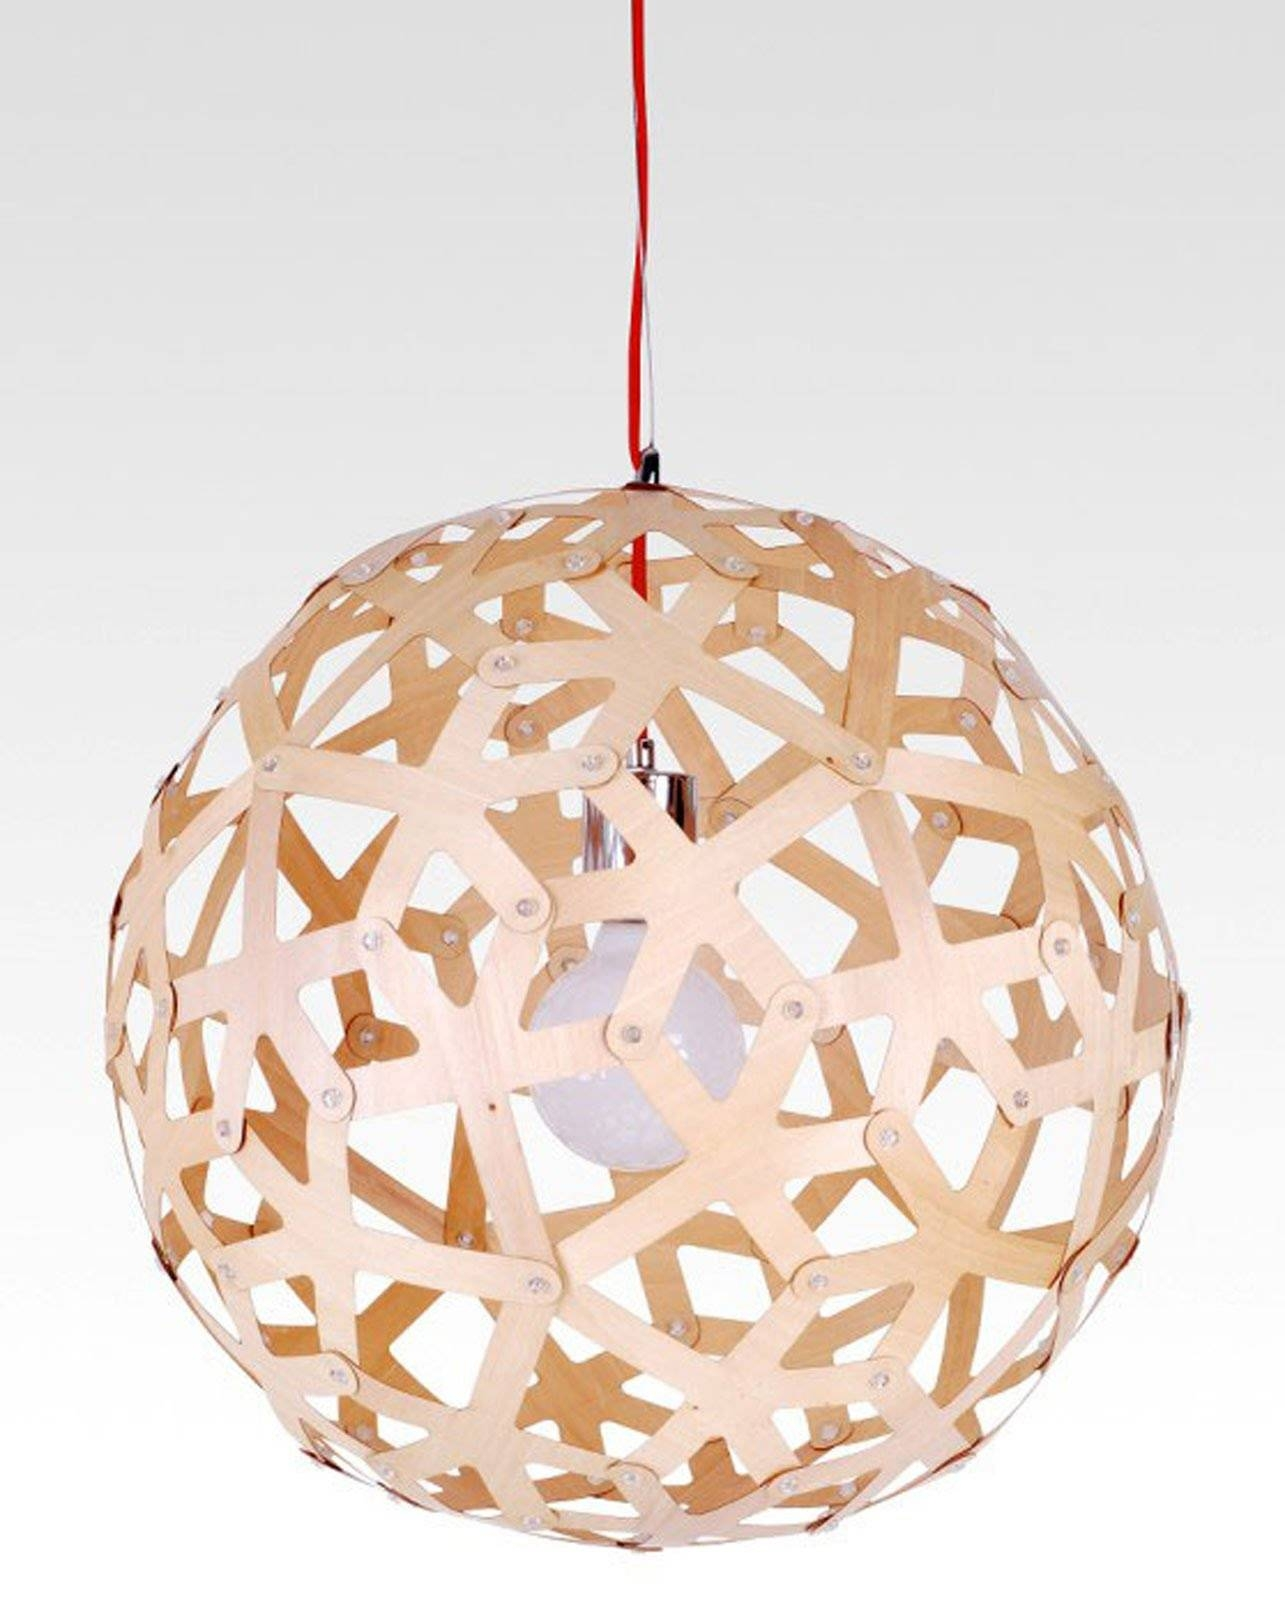 Buy Wood Pendant Light In Melbourne [Sphere] - Youtube inside Wooden Pendant Lights Melbourne (Image 6 of 15)